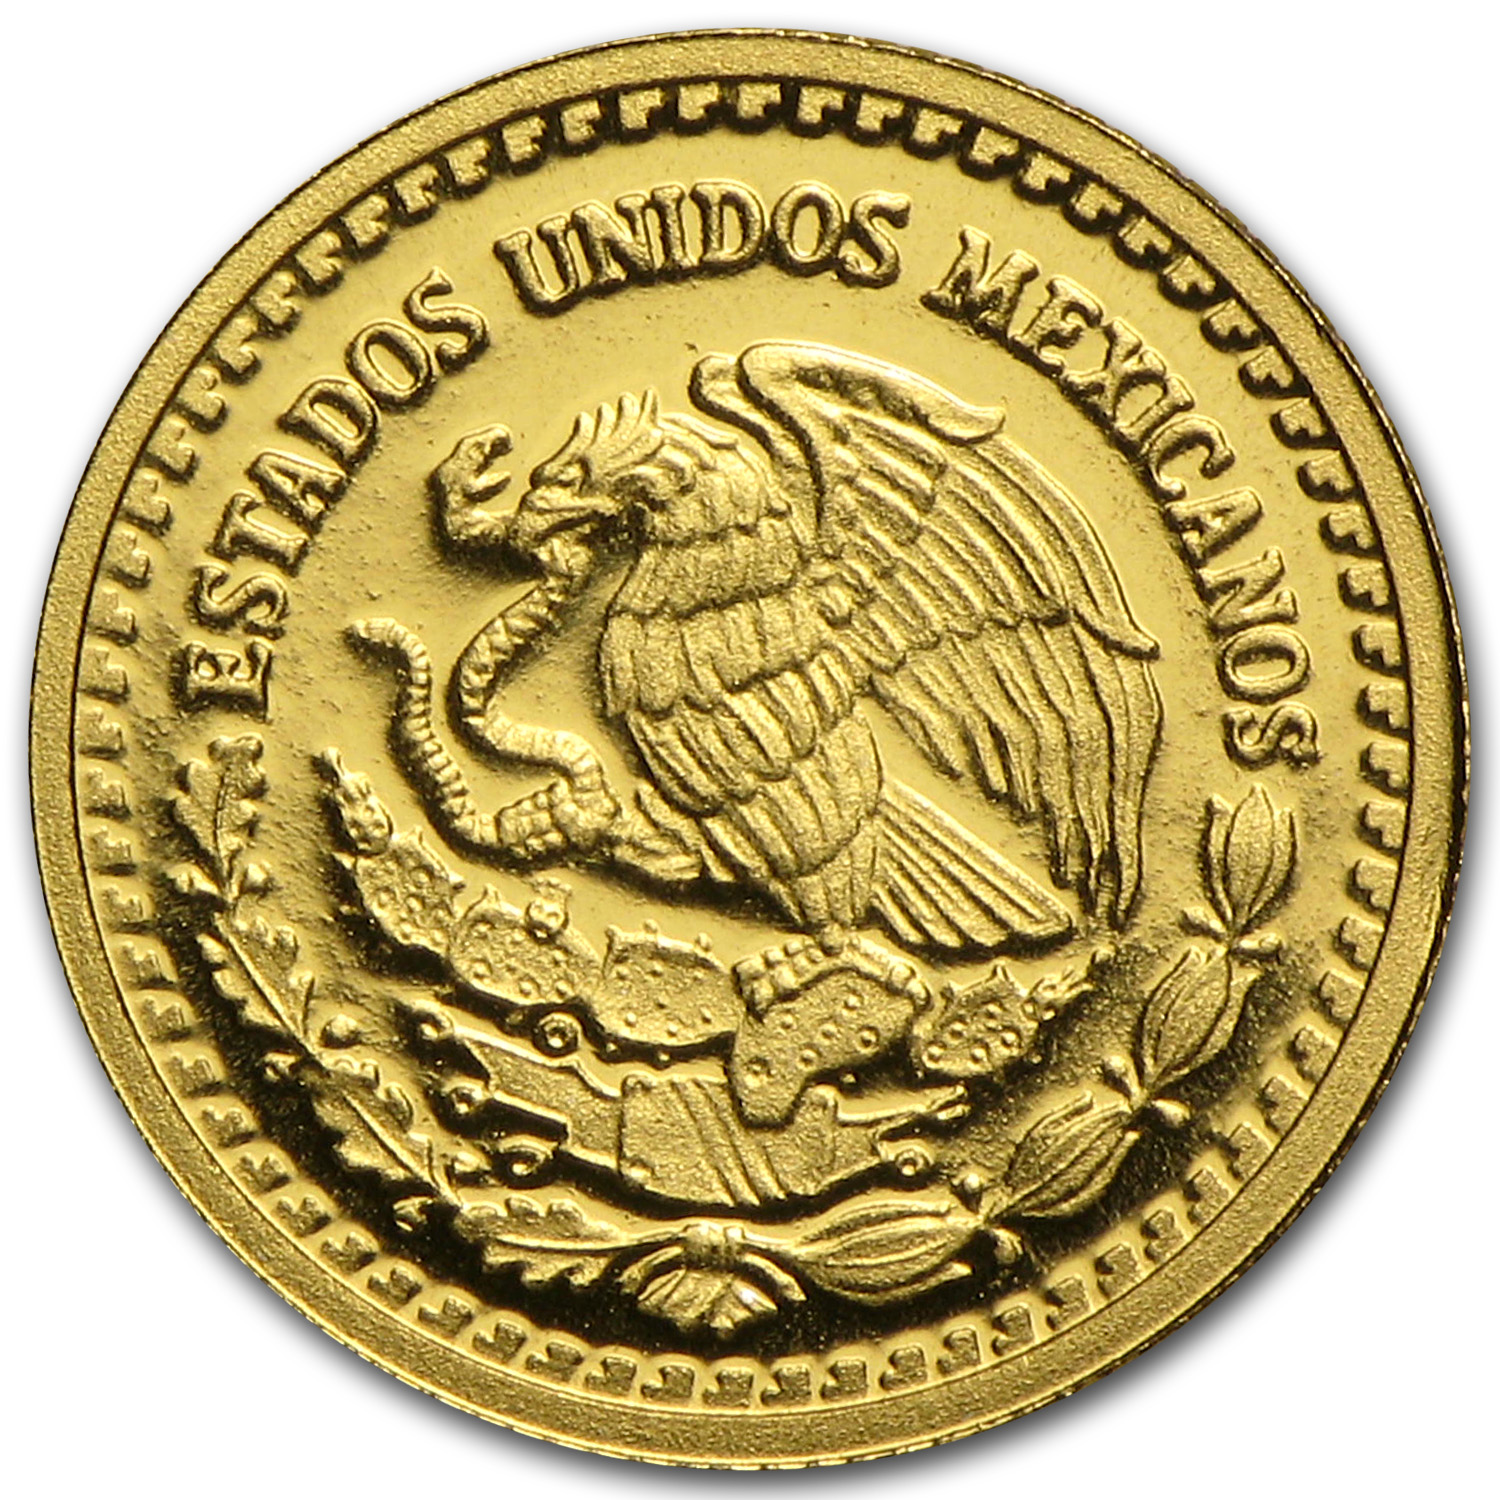 2010 Mexico 1/20 oz Proof Gold Libertad